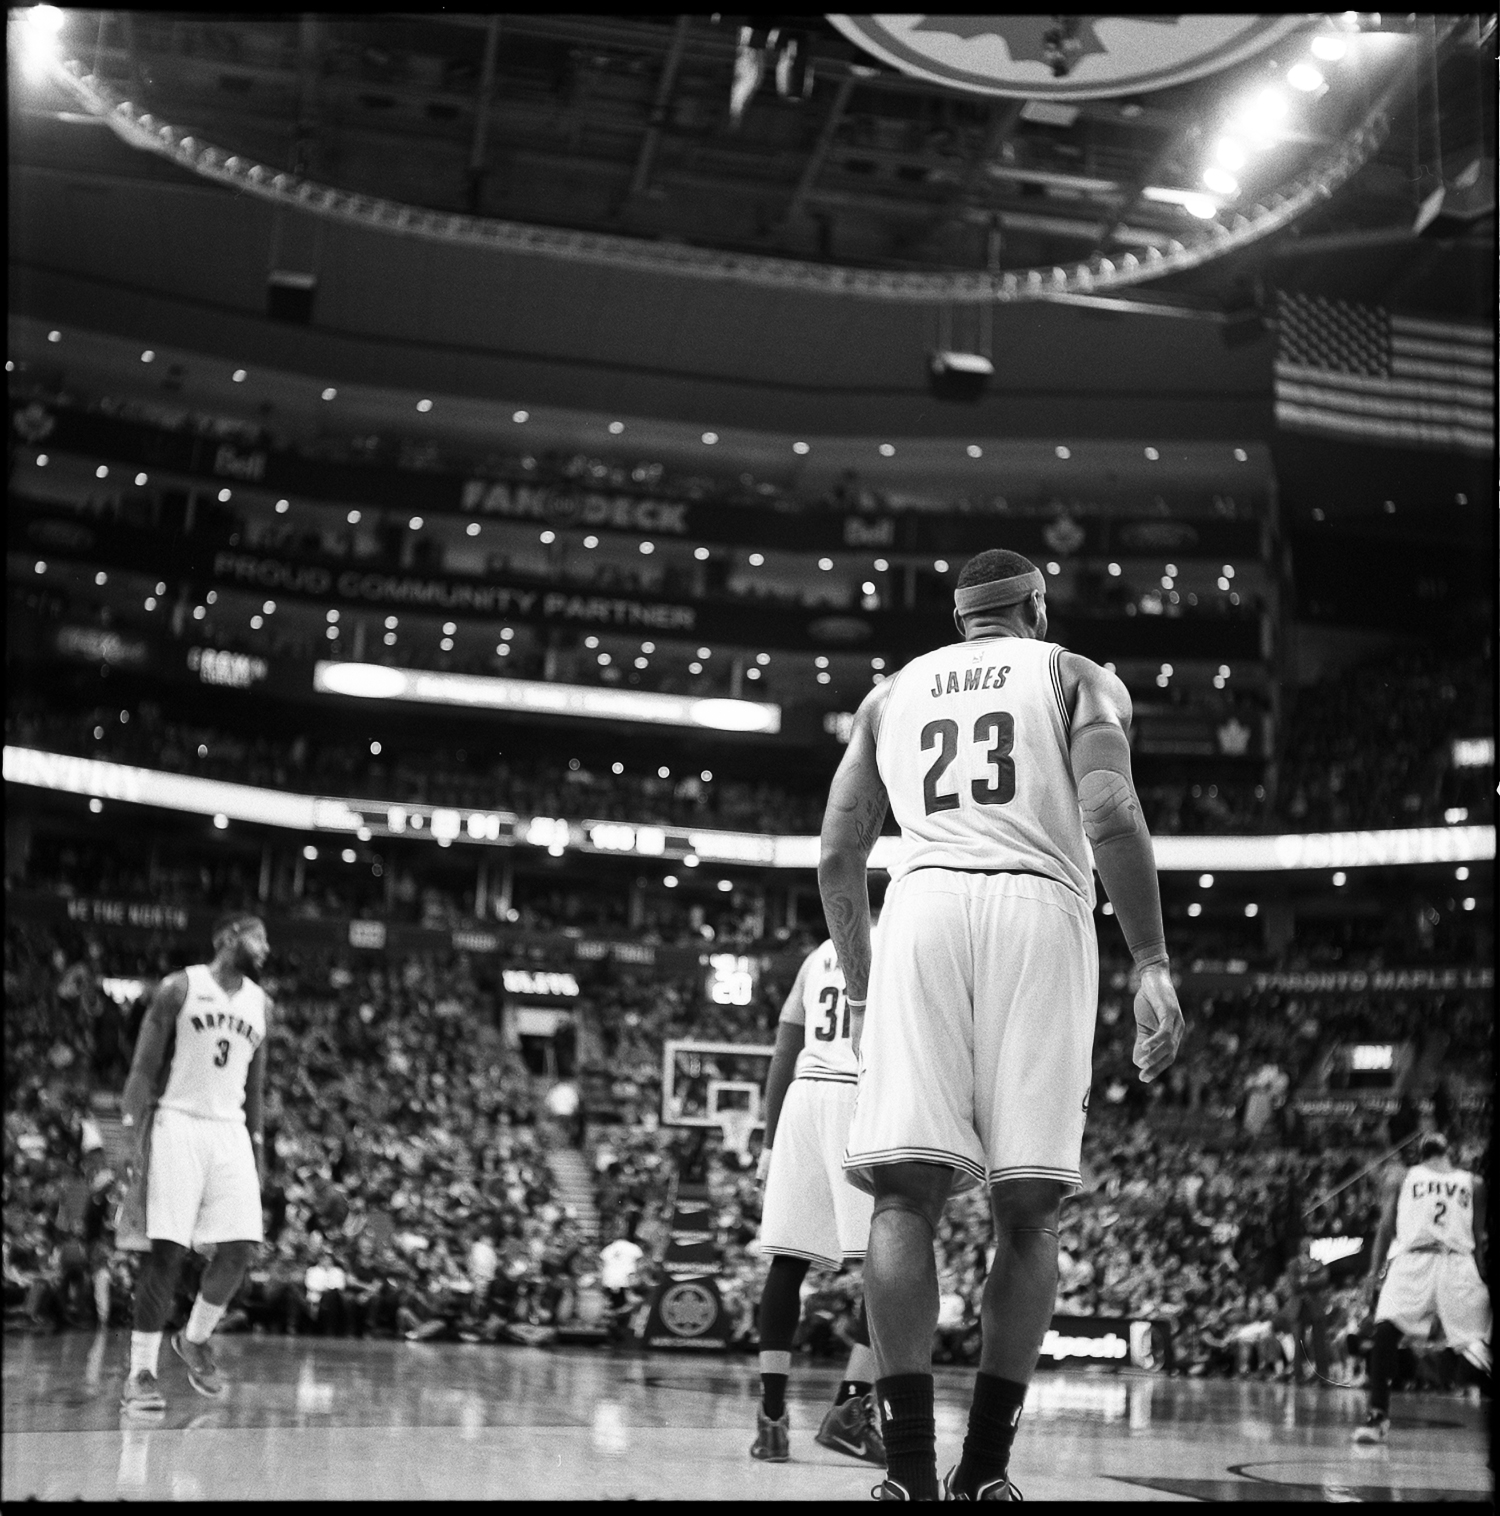 63-NBA-King-James-Number-23-Toronto-Raptos-VS-Cleveland-Caveliers-Lebron-James-Vintage-Film-Courtside-Ilford-HP5+.JPG